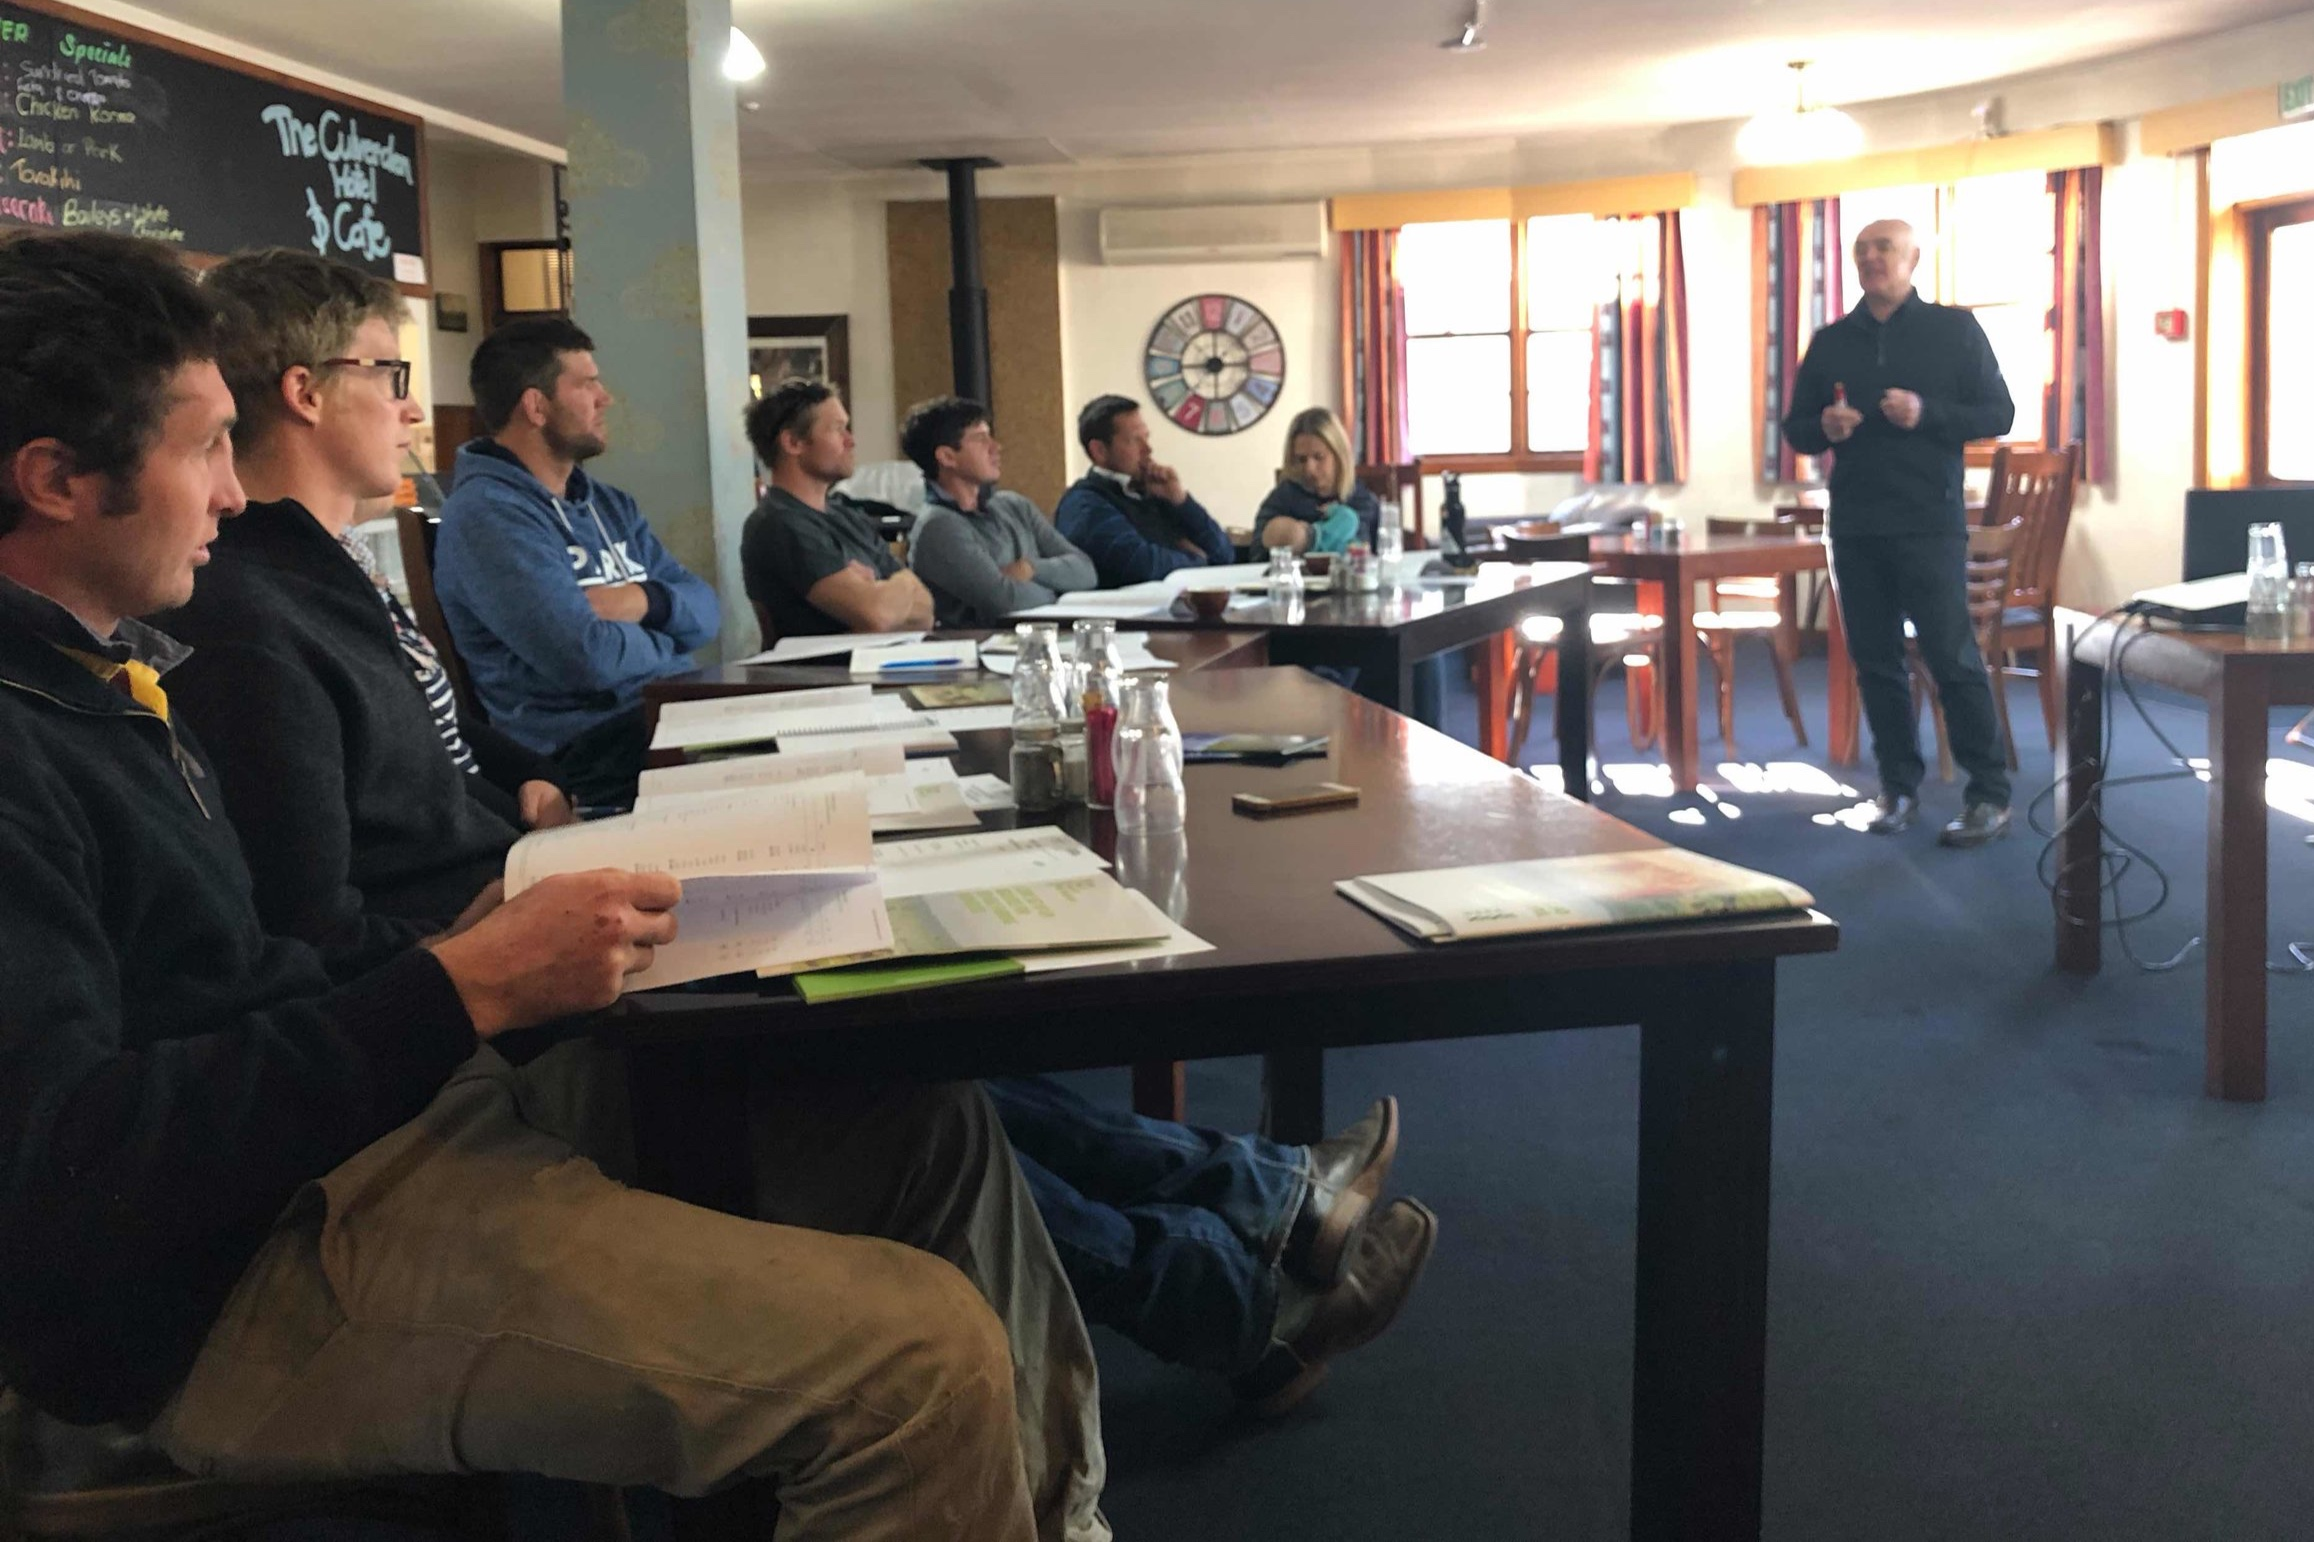 The Hurunui Legumes Action Group in the RMPP 'Taking Ownership of Your Financials' workshop